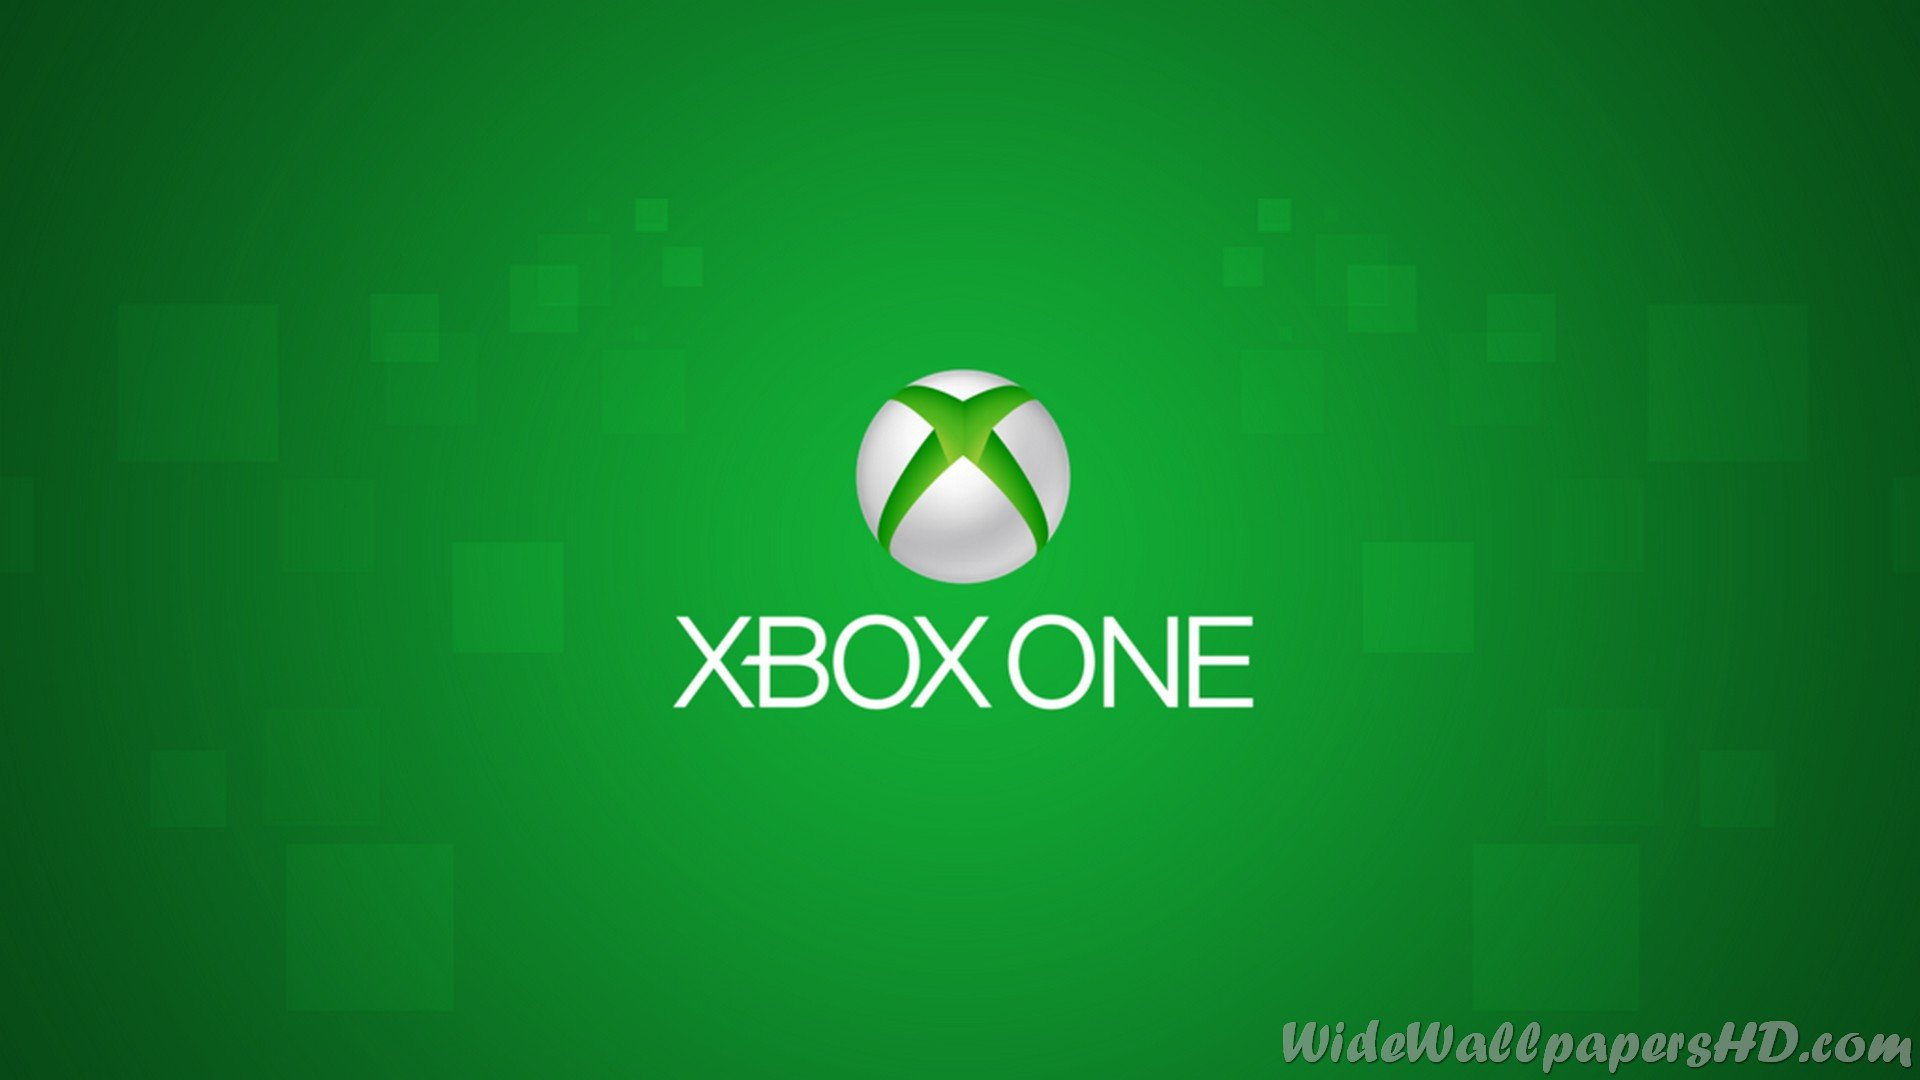 Free Download Xbox One Green Logo 1 Wallpaper 1920x1080 Widewallpapershd 1920x1080 For Your Desktop Mobile Tablet Explore 76 Cool Xbox Backgrounds Wallpaper For Xbox One Dashboard Wallpapers For Xbox